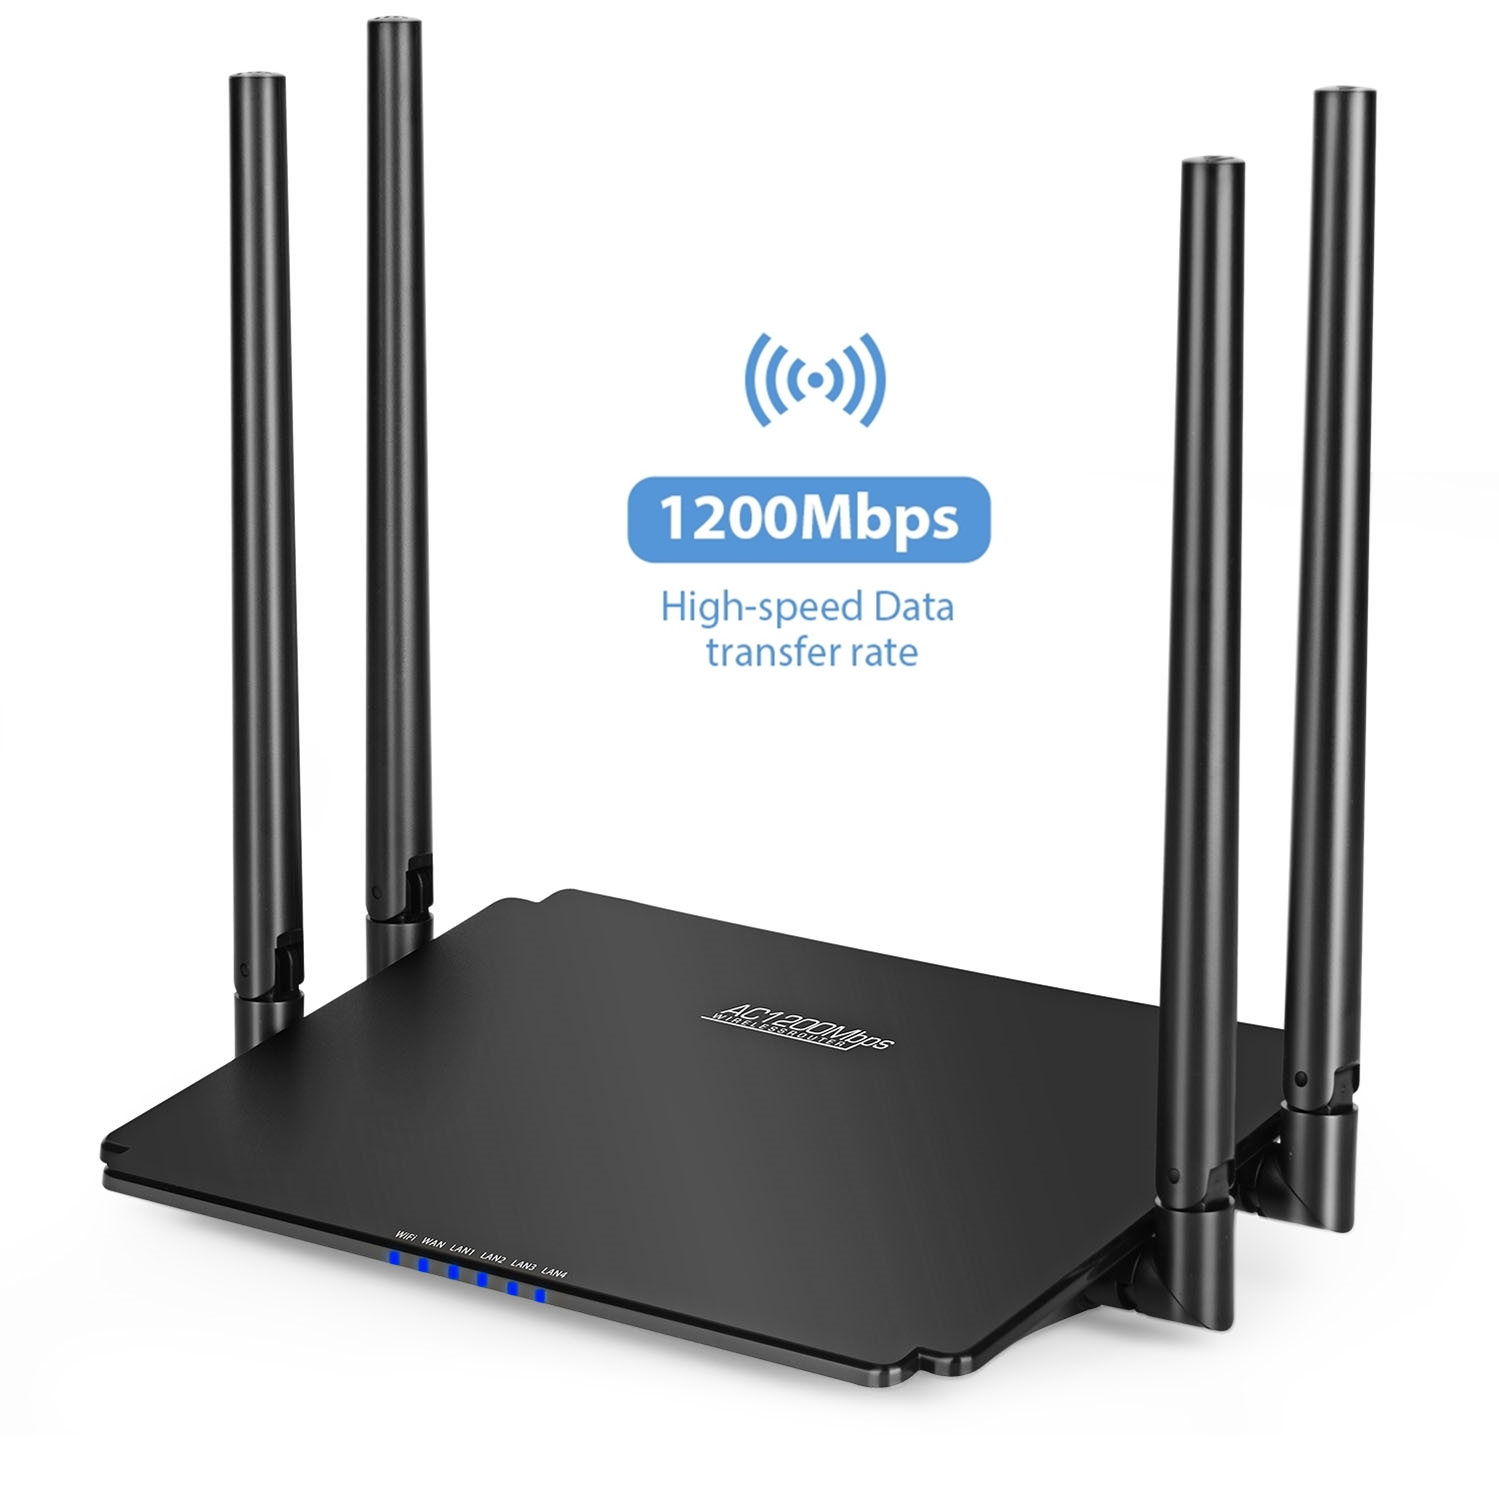 IMice Wifi Router 1200 Mbps Wi-Fi Router 5 GHz 2,4 GHz High Speed Dual Band Wireless Access Point Smart APP management Wi Fi Router